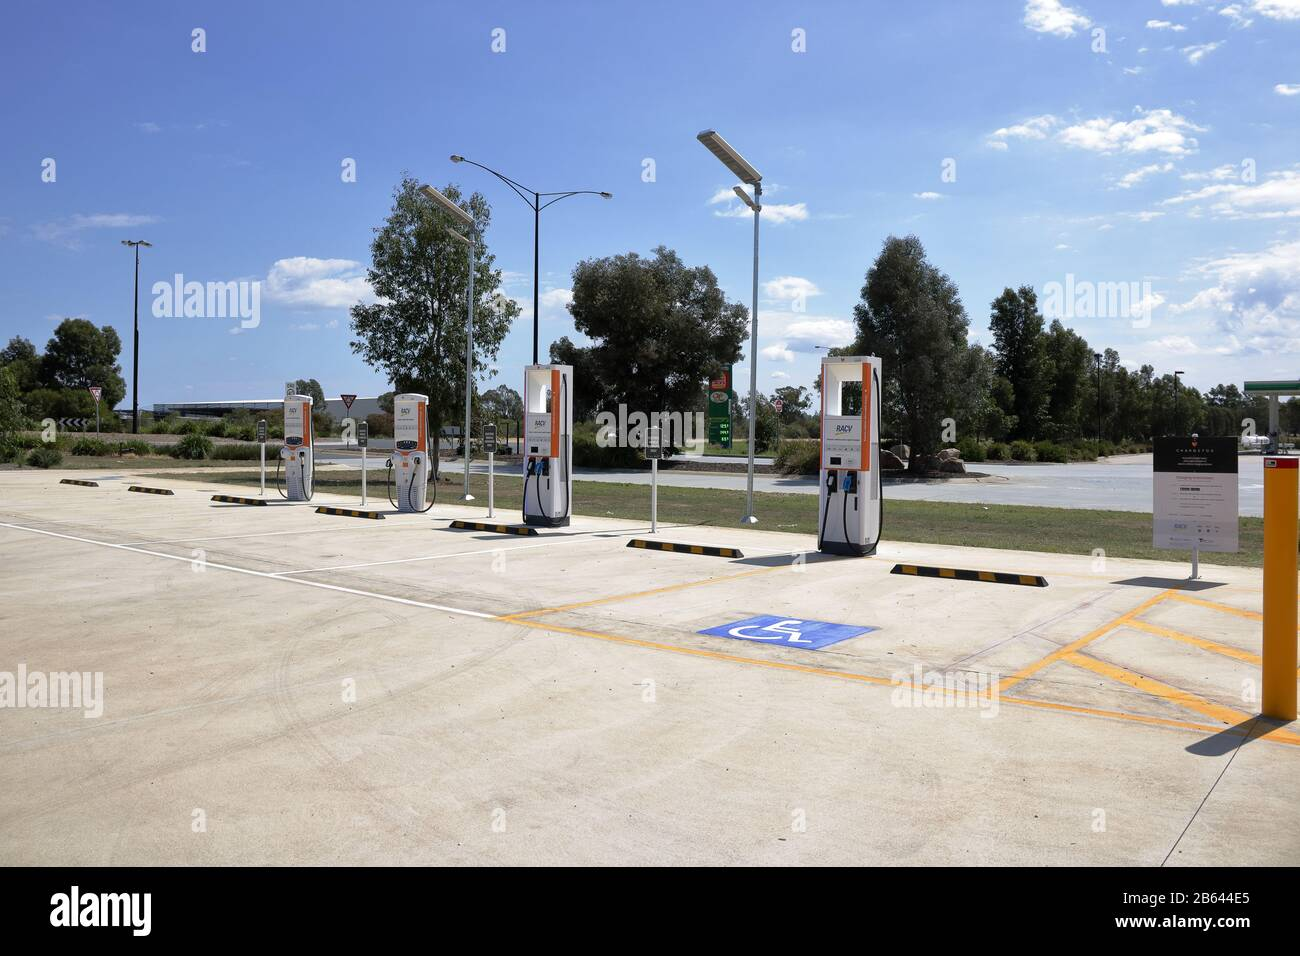 Electric car charging station powered by Solar and Battery backup, provided by RACV and CHARGEFOX, located at Barnawartha North BP service station VIC. Stock Photo